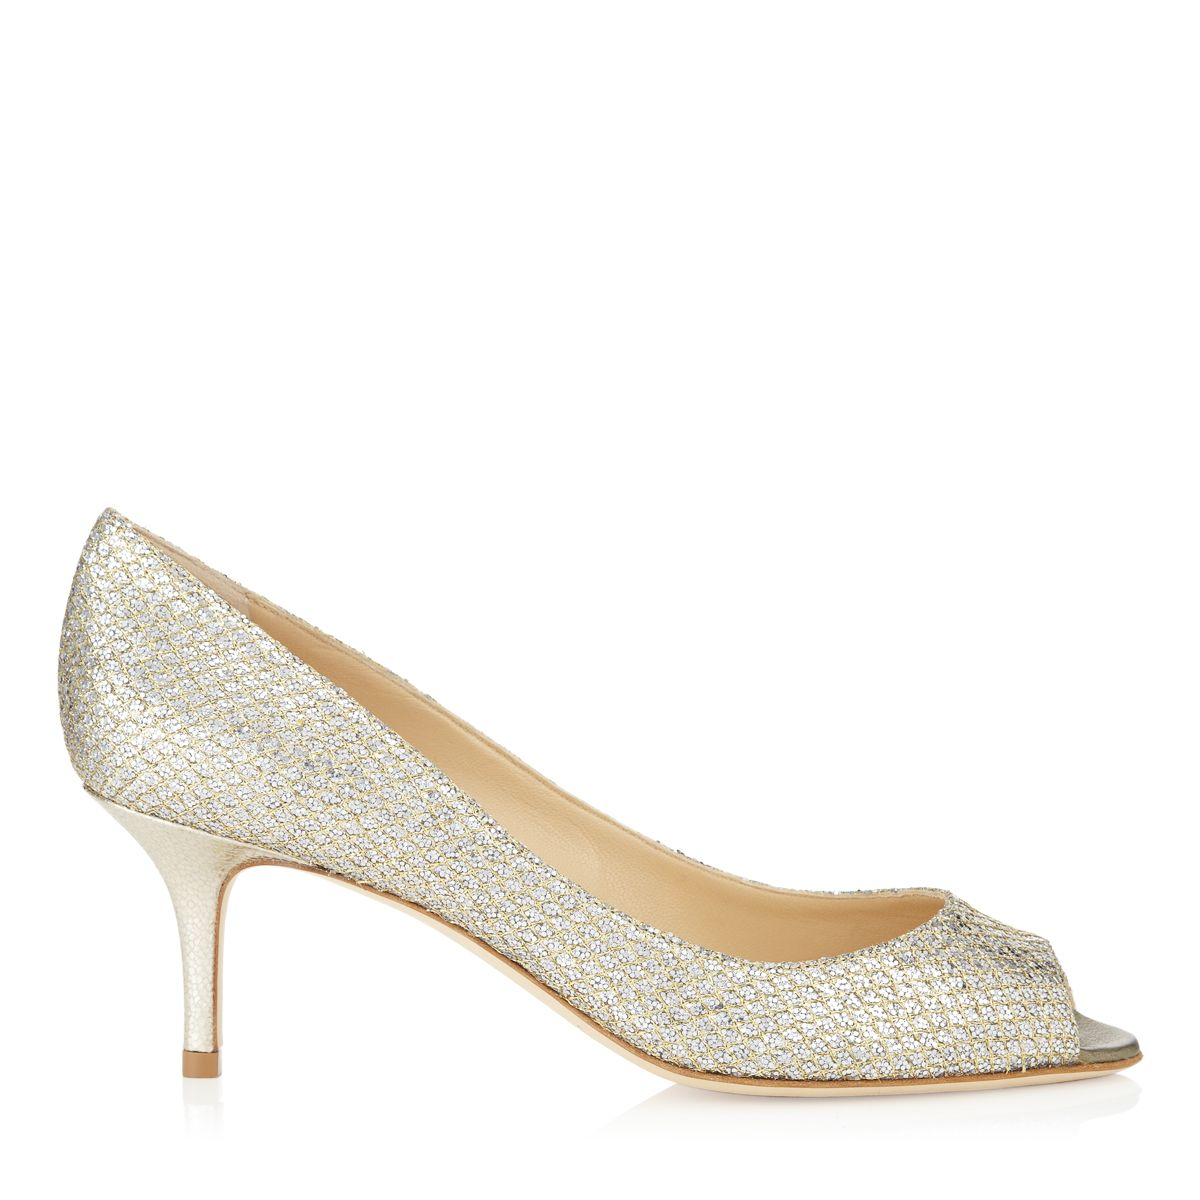 Sparkly shoes add a glamorous touch to a simple cocktail dress. This easy to wear style has a pretty peep toe silhouette and a heel that will keep you comfortable from pre dinner cocktails to the dance floor finale. Heel measures 65mm/2.5